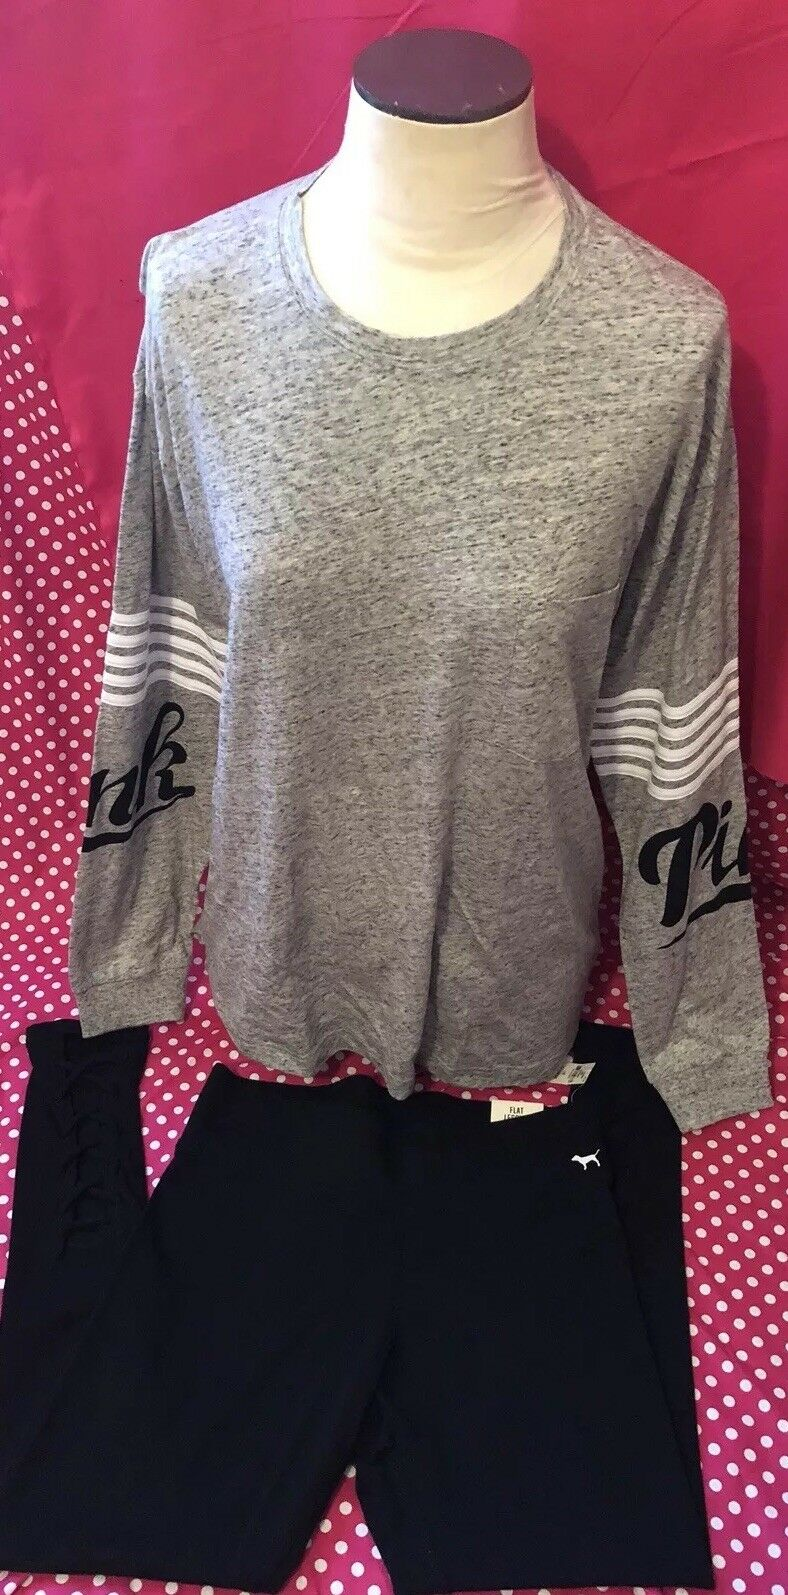 NWt L Xl Victoria Secret PINK Set Campus Crew Tee Shirt Legging Lace Oversized